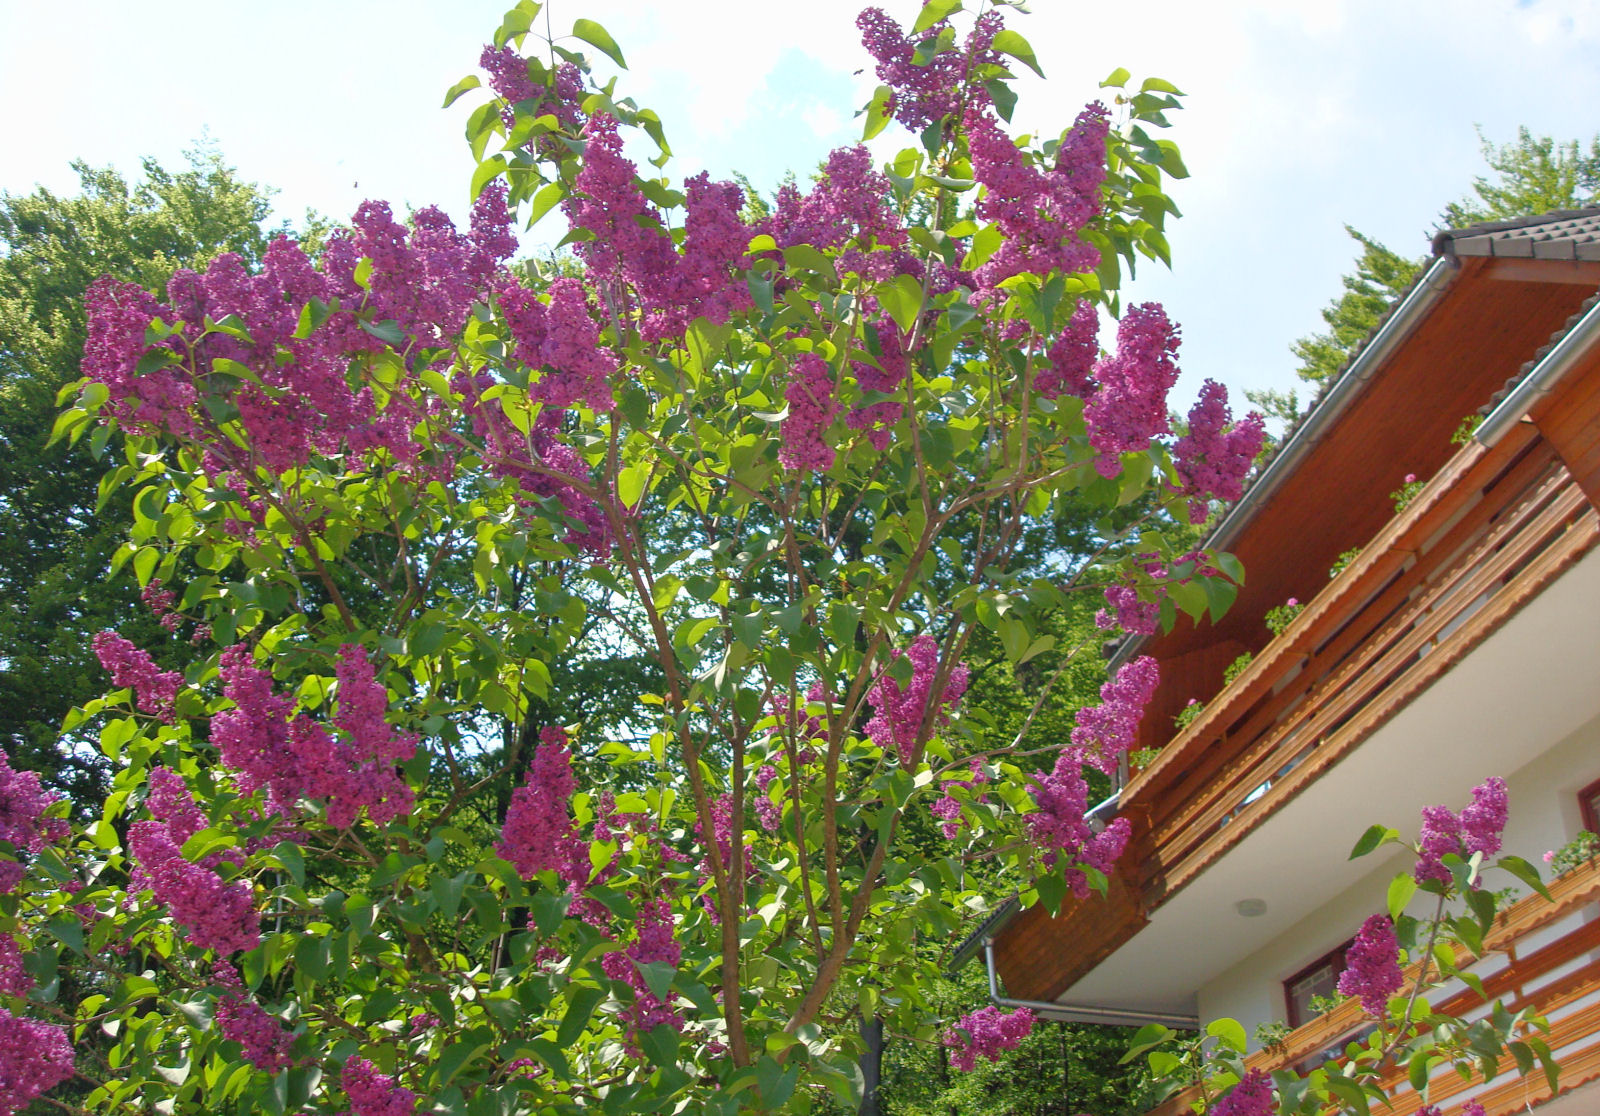 There's nothing like the smell of blooming Lilacs in the spring.